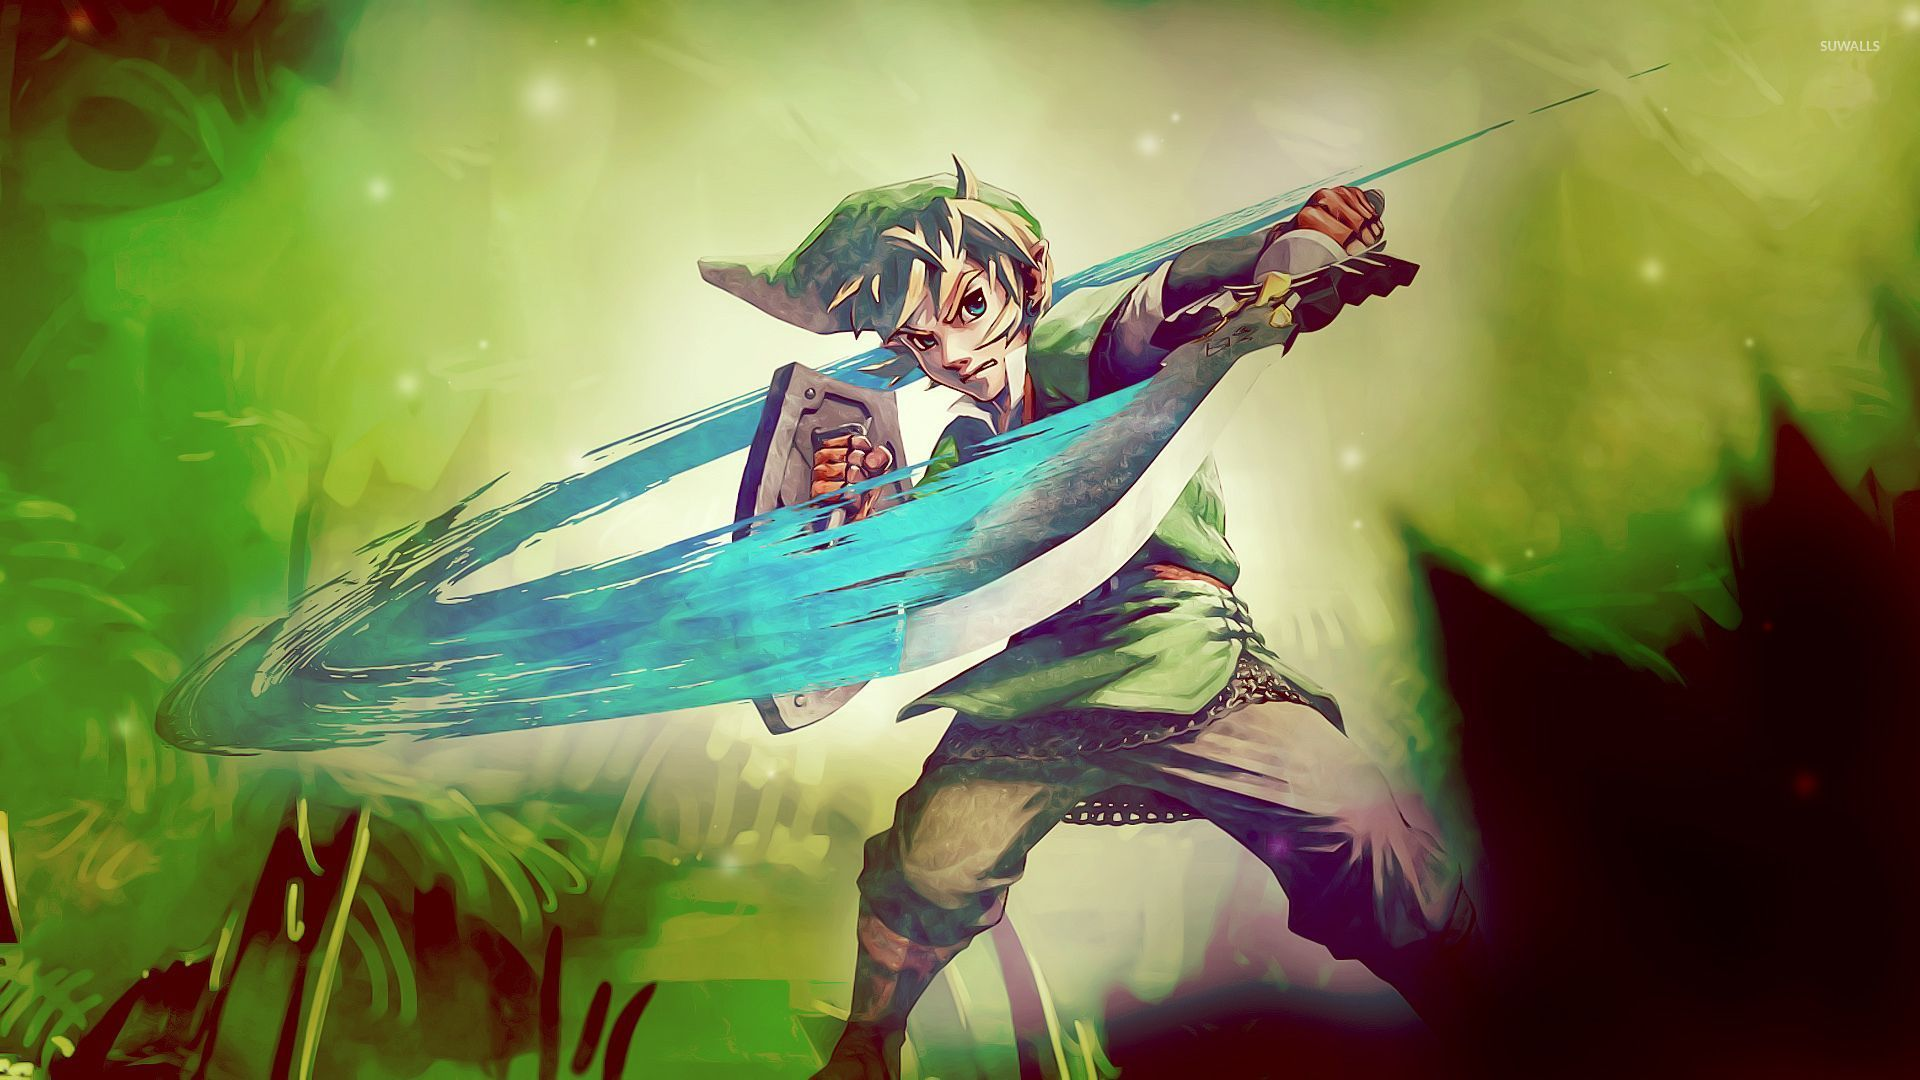 Fighting Link Legenf Of Zelda Wallpaper Game Wallpapers 53984